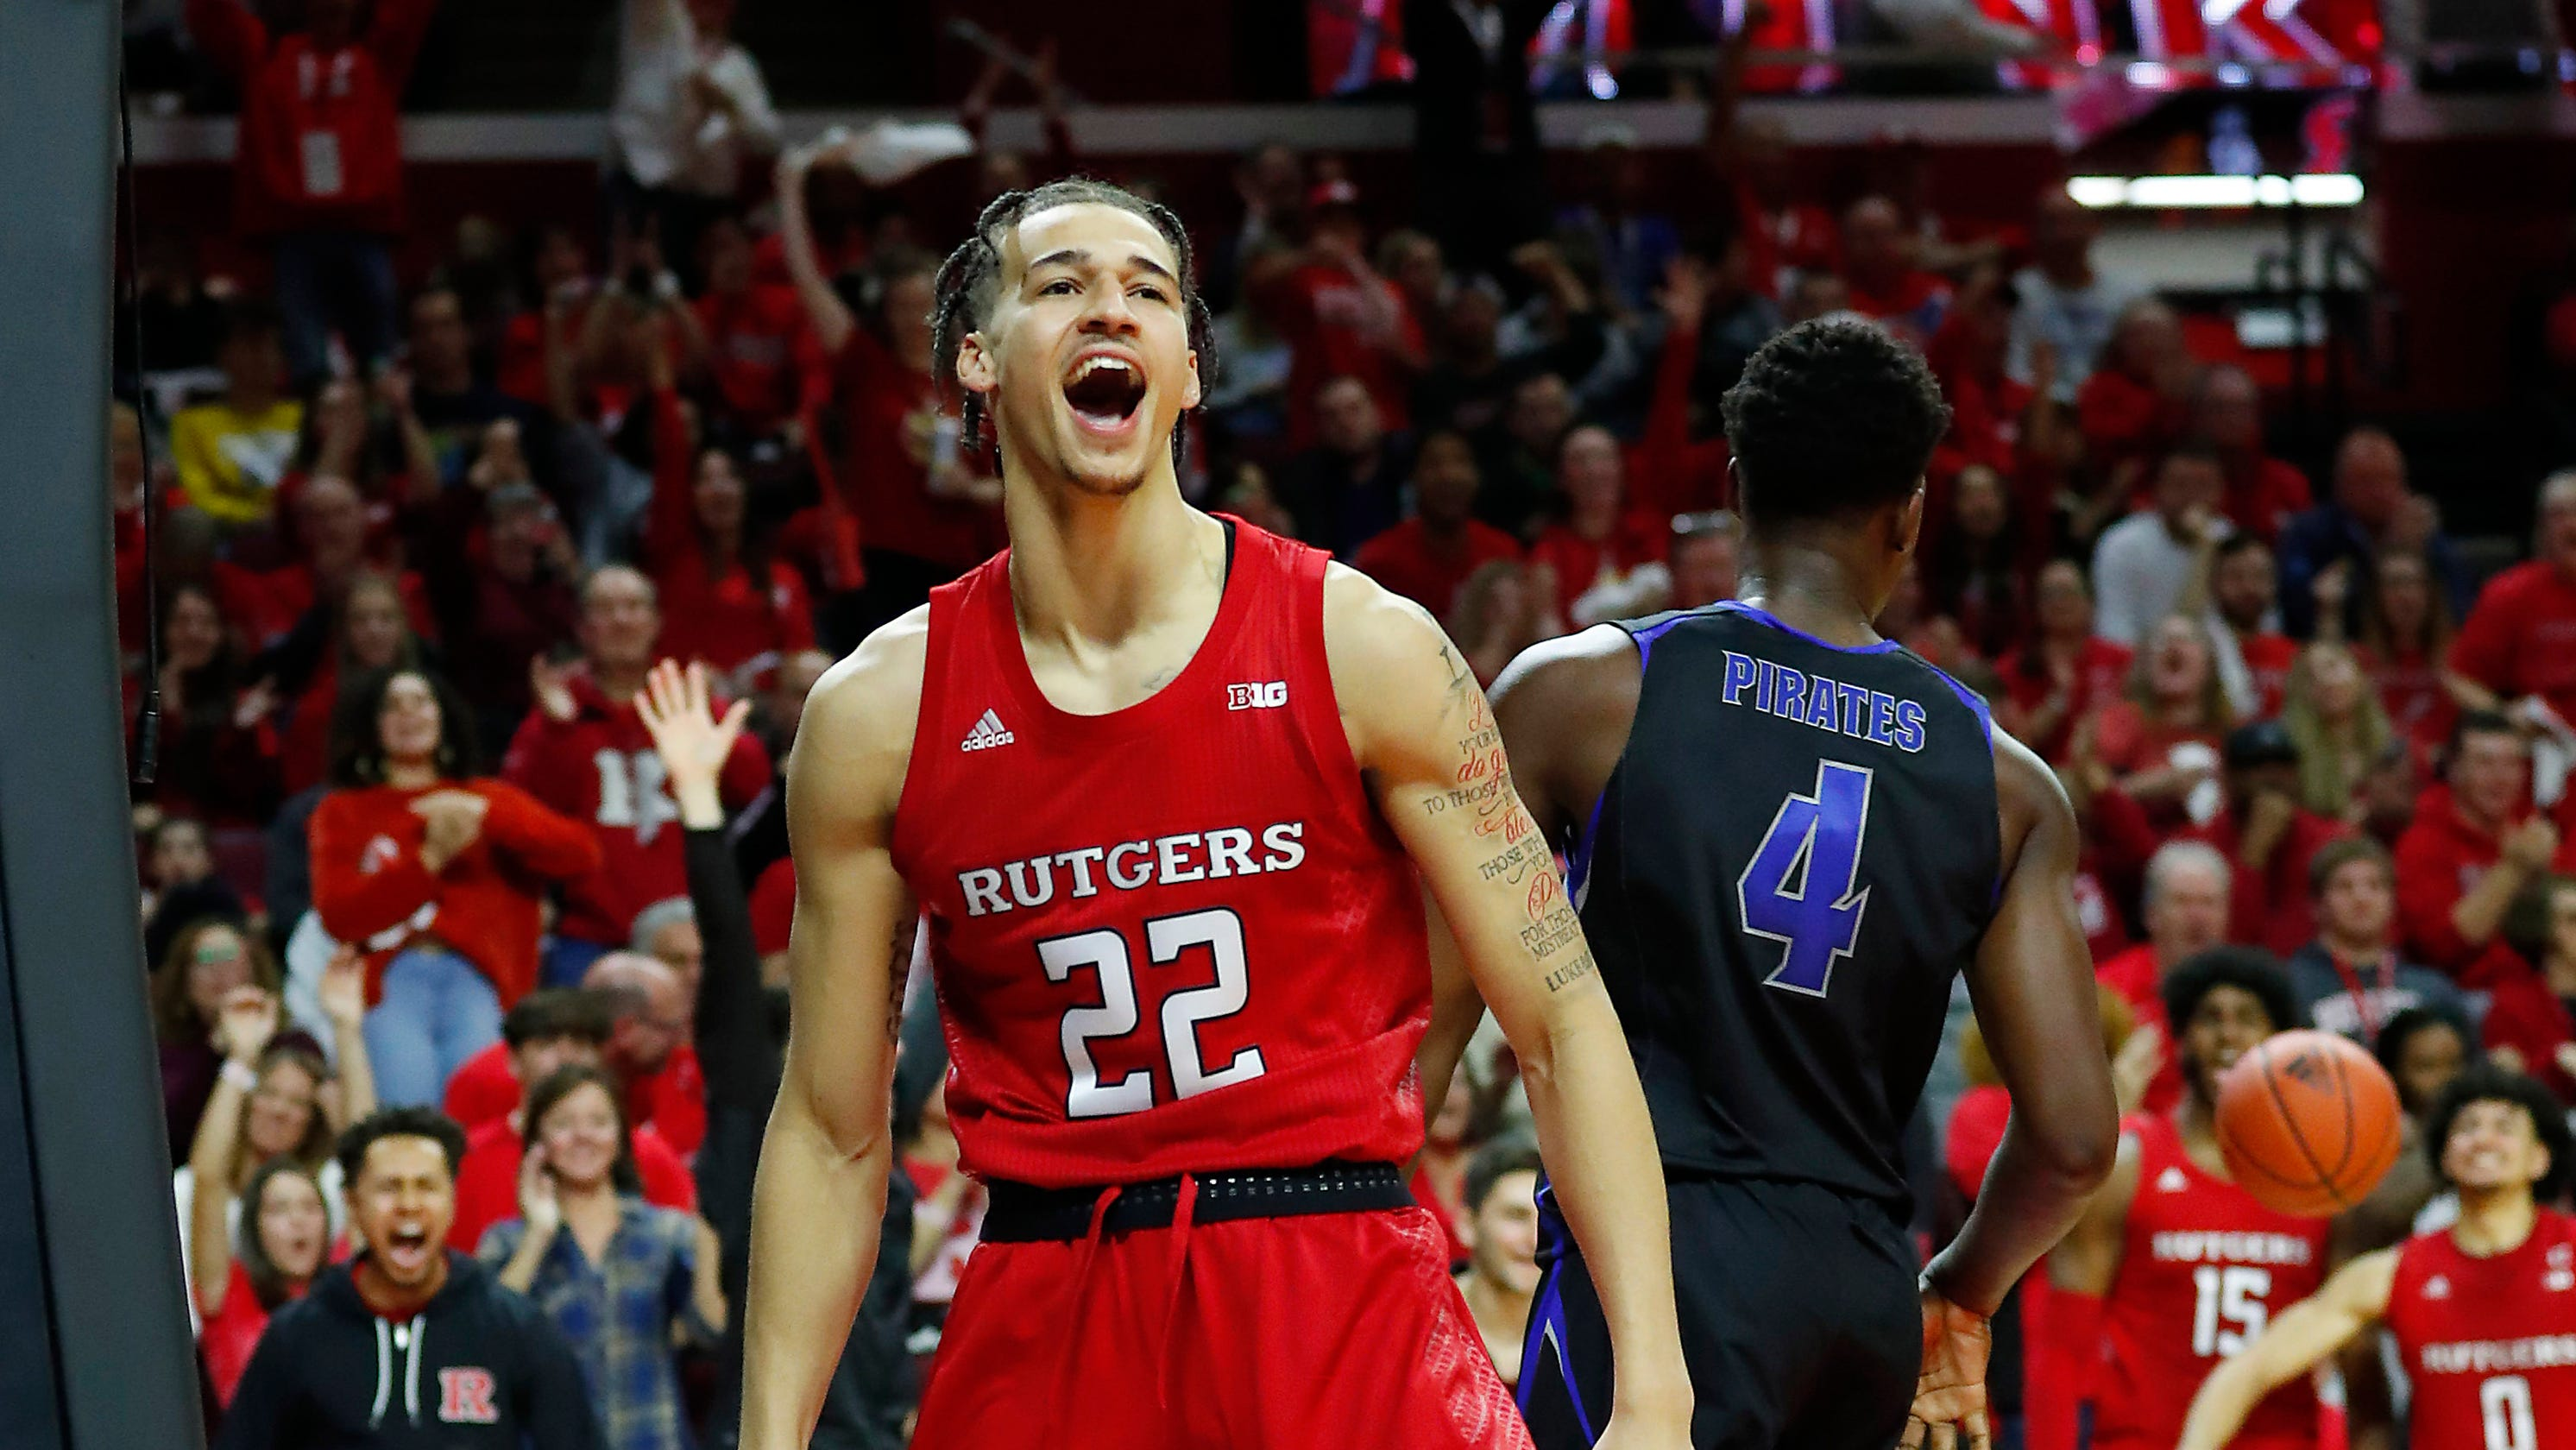 Image result for rutgers basketball 2020